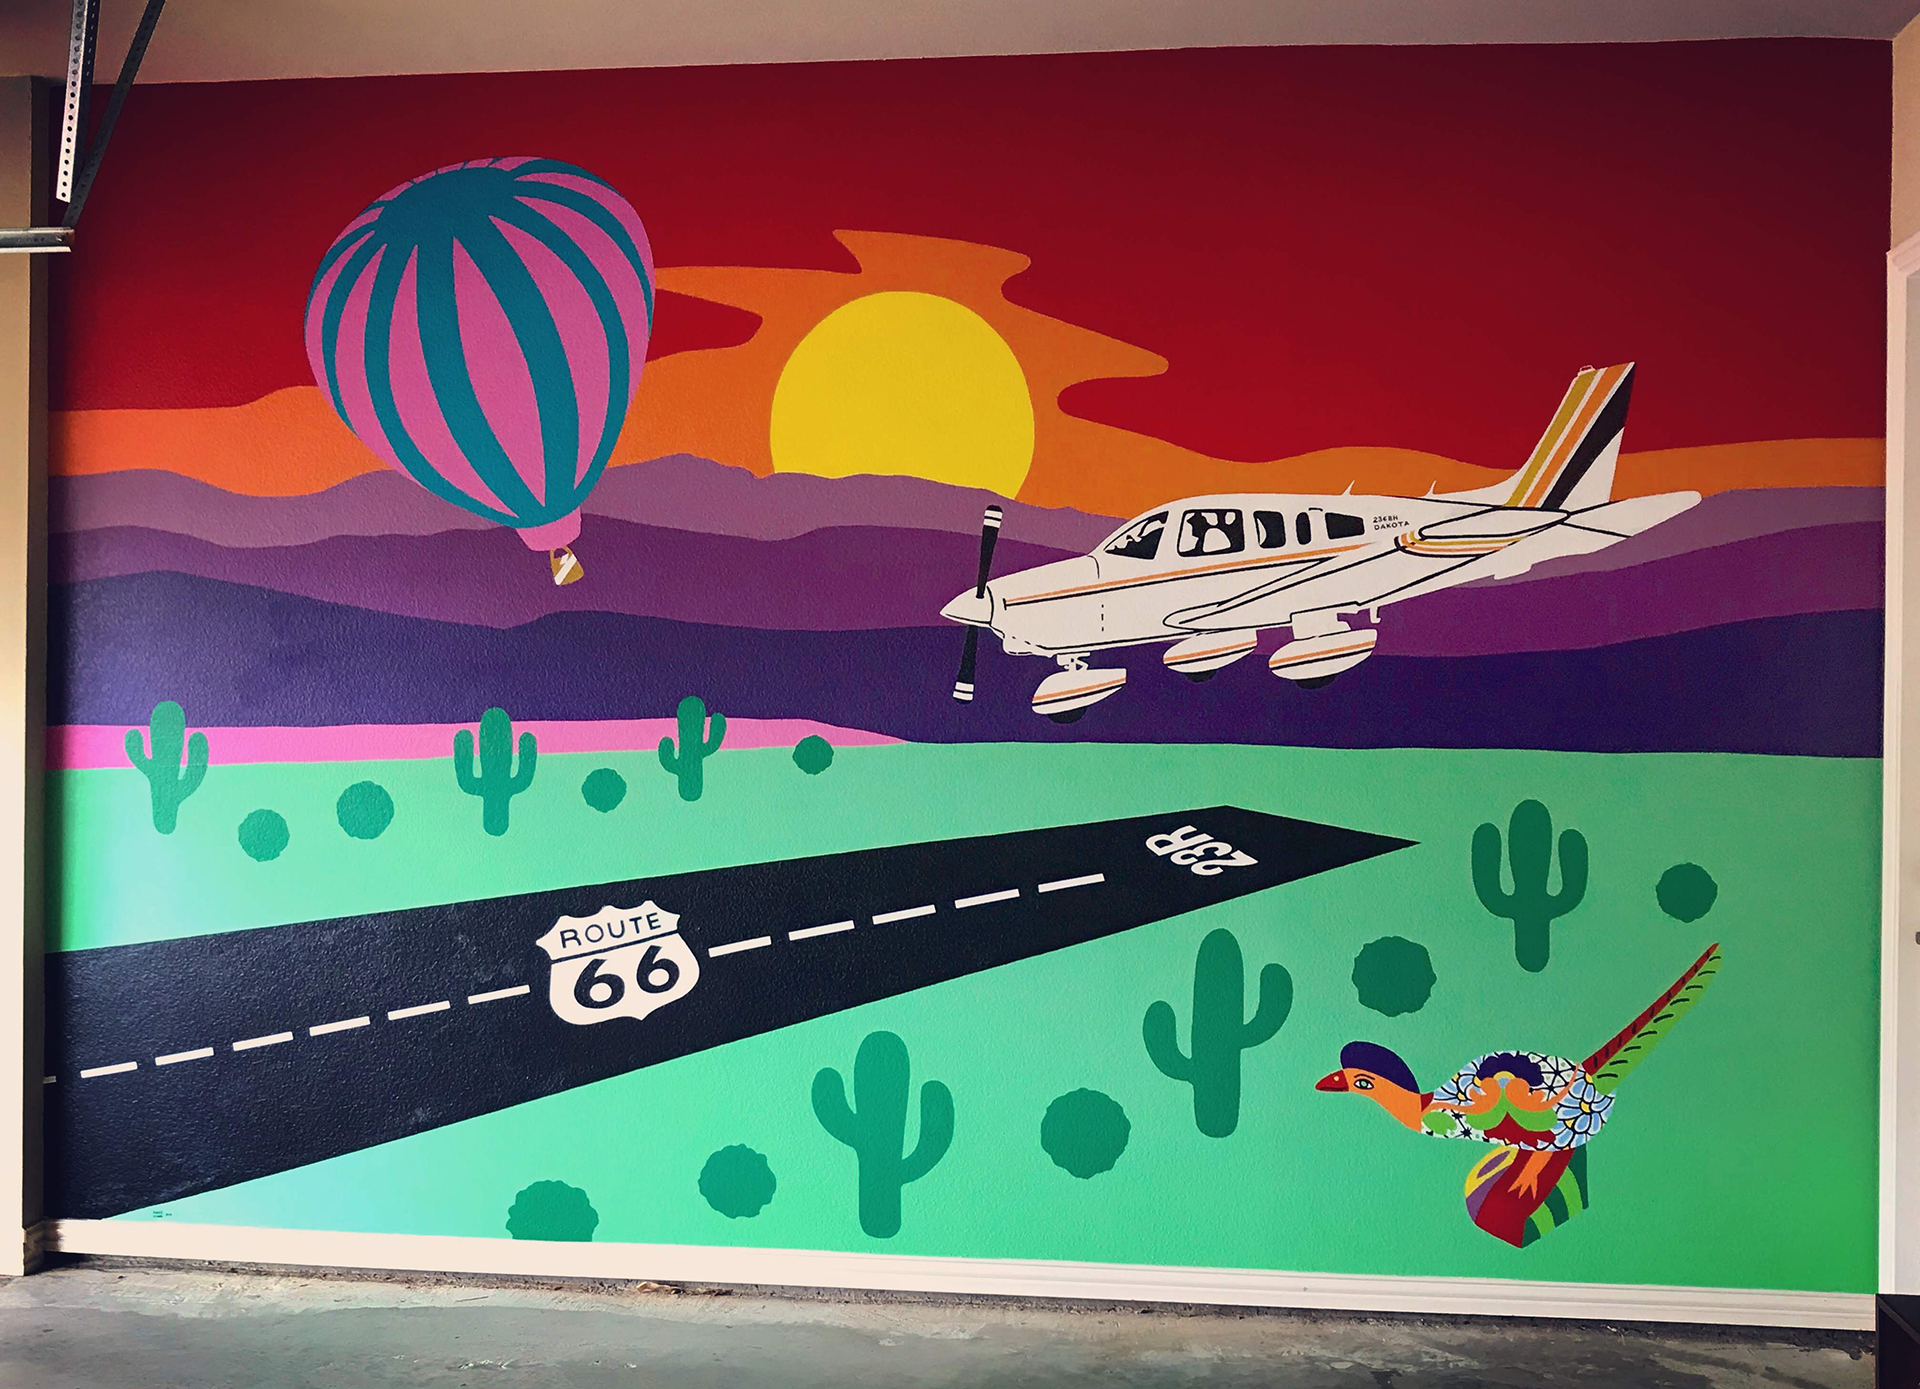 New Mexico, mural, plane, sunset, roadrunner, highway 66, hot air baloon